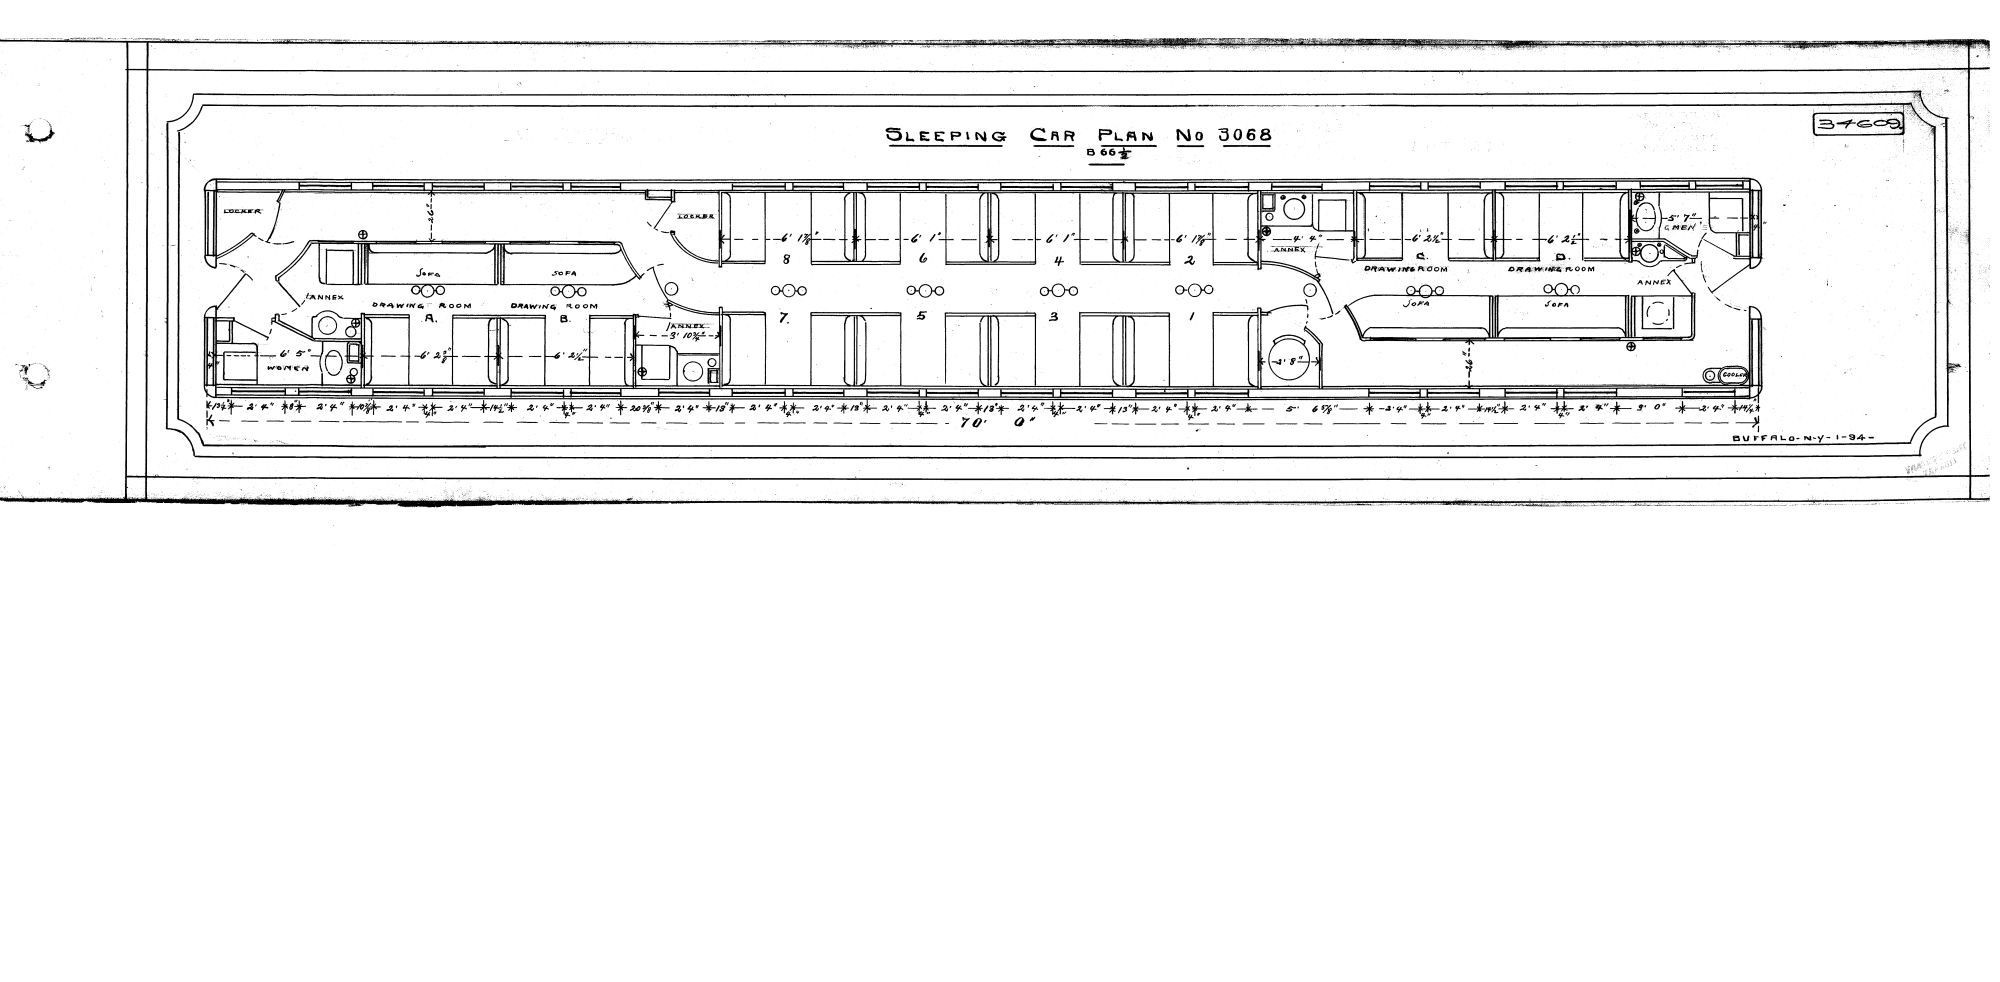 Amtrak Sleeping Car Diagrams Passenger Train Sleeping Car Cutaway Illustration Google Search